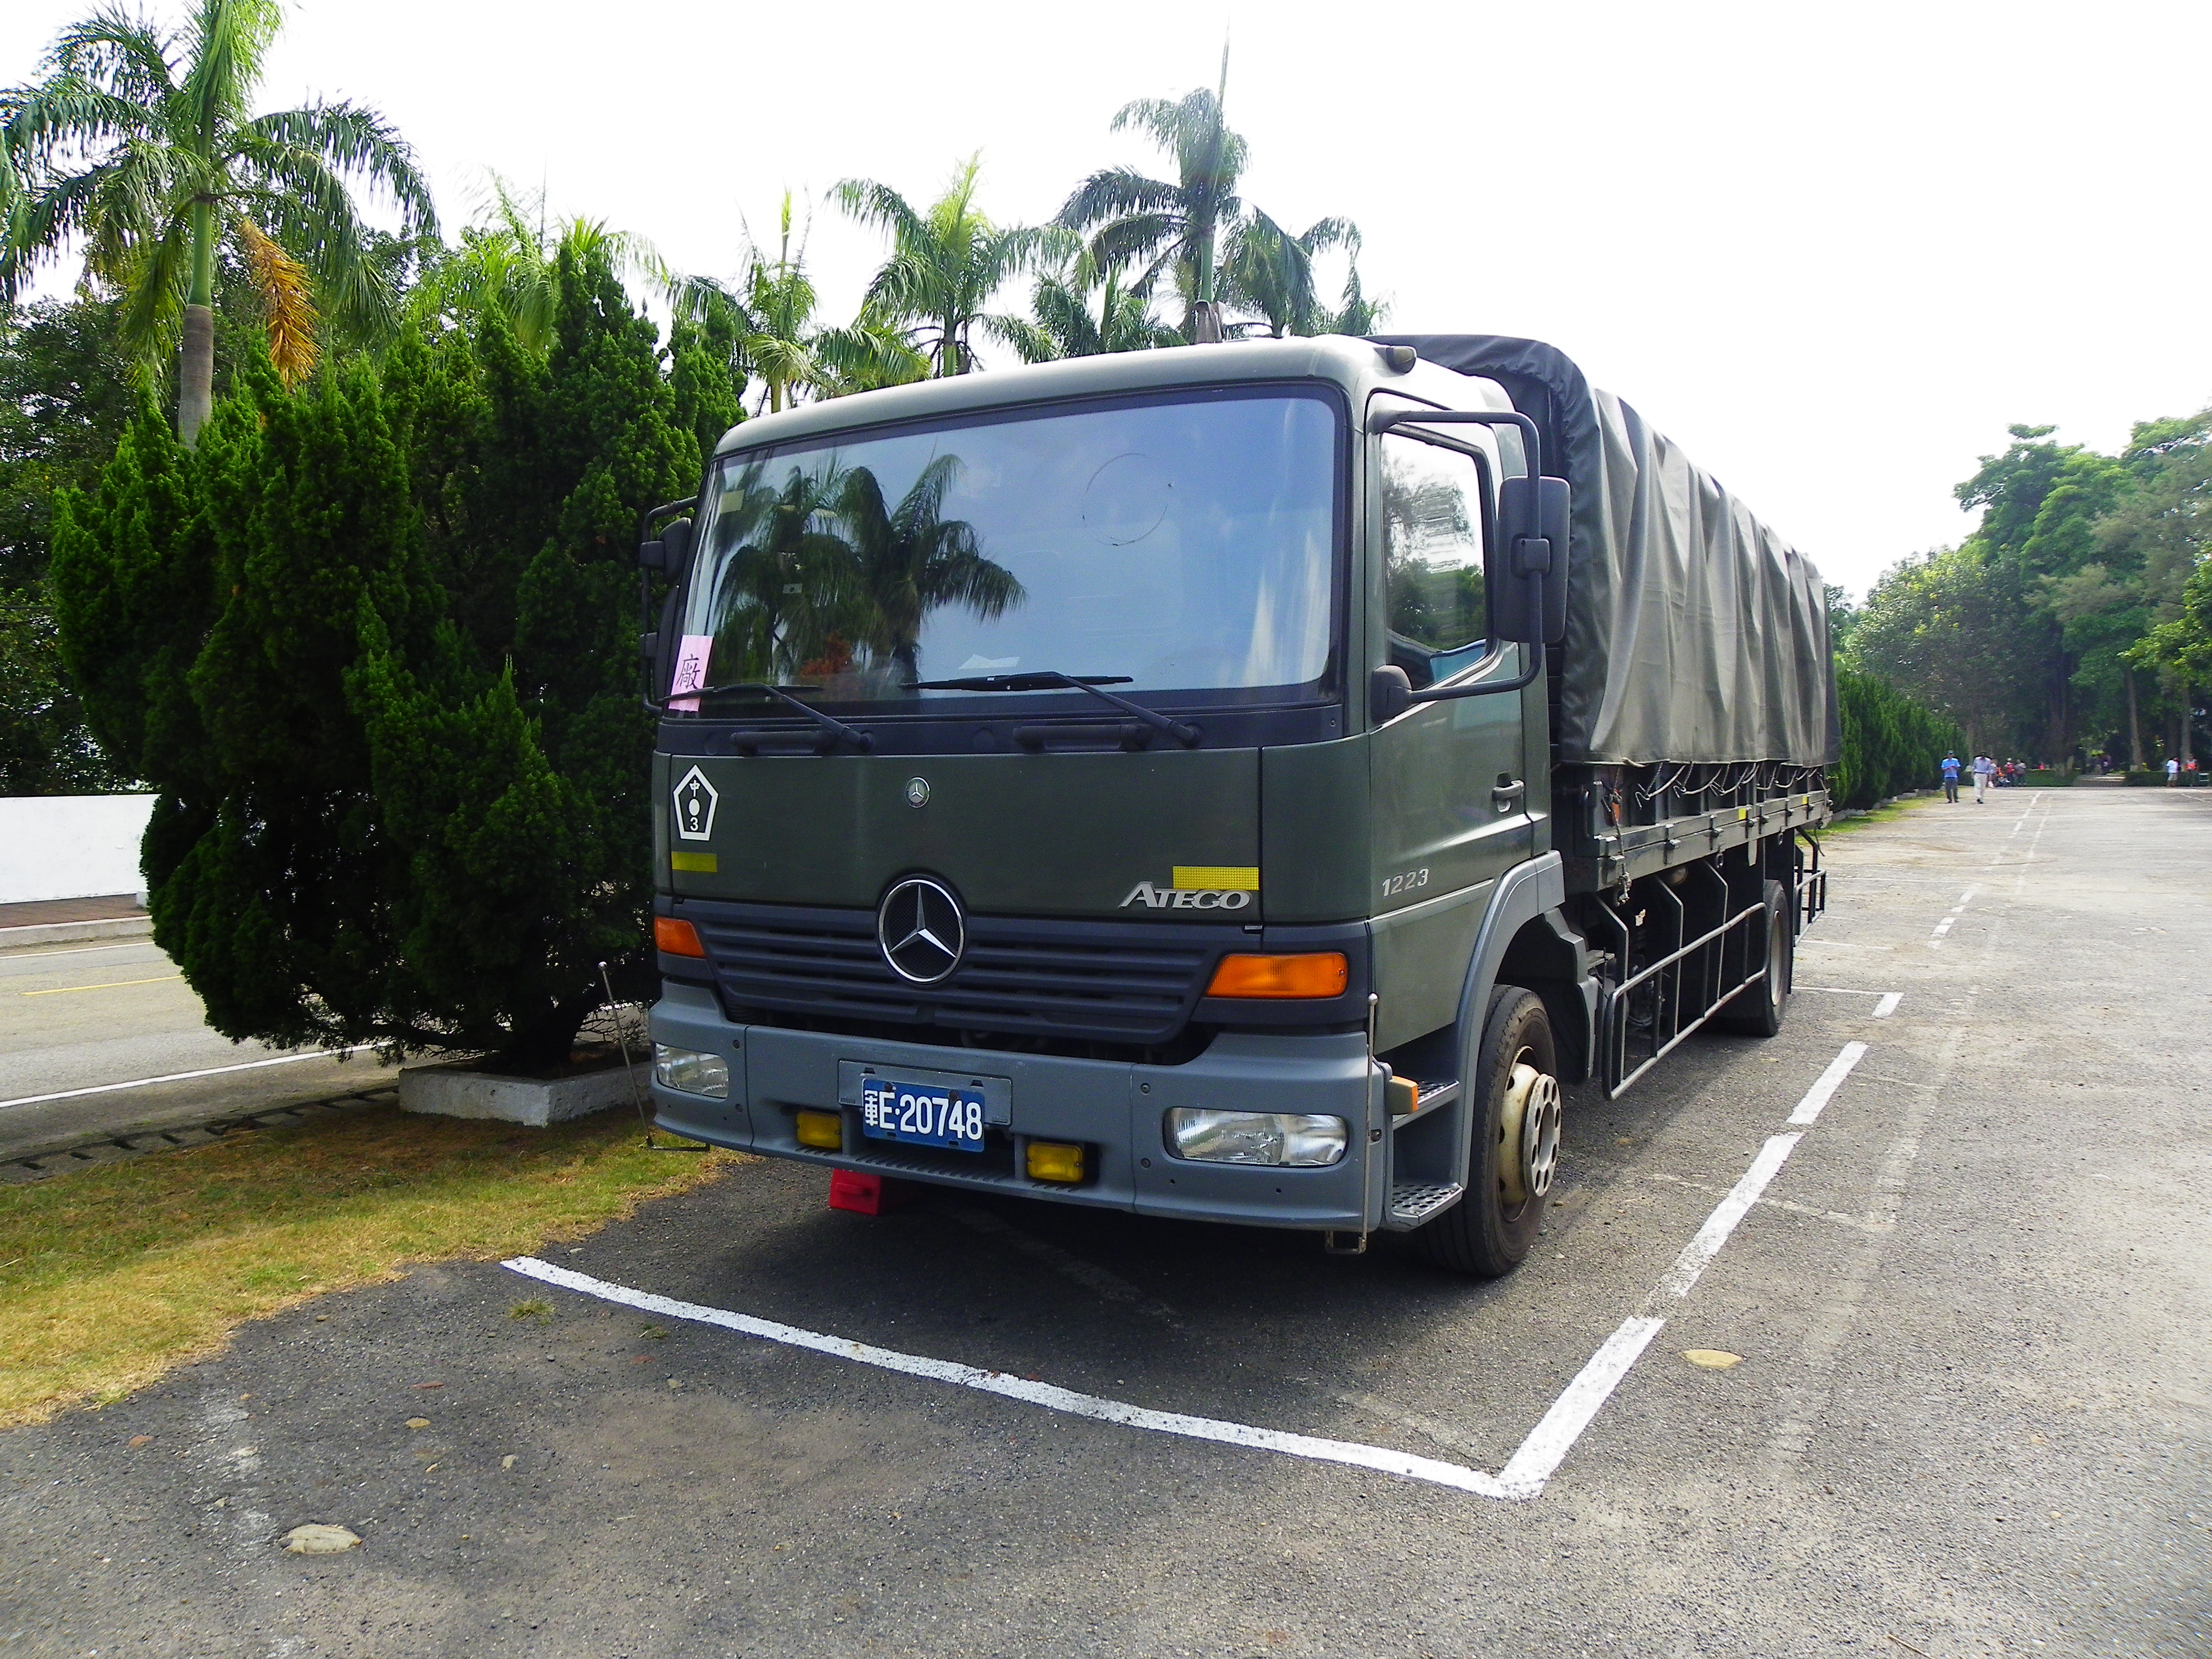 File:ROCA Mercedes-Benz Atego 1223 Truck Parked in Chengkungling  20131012.jpg